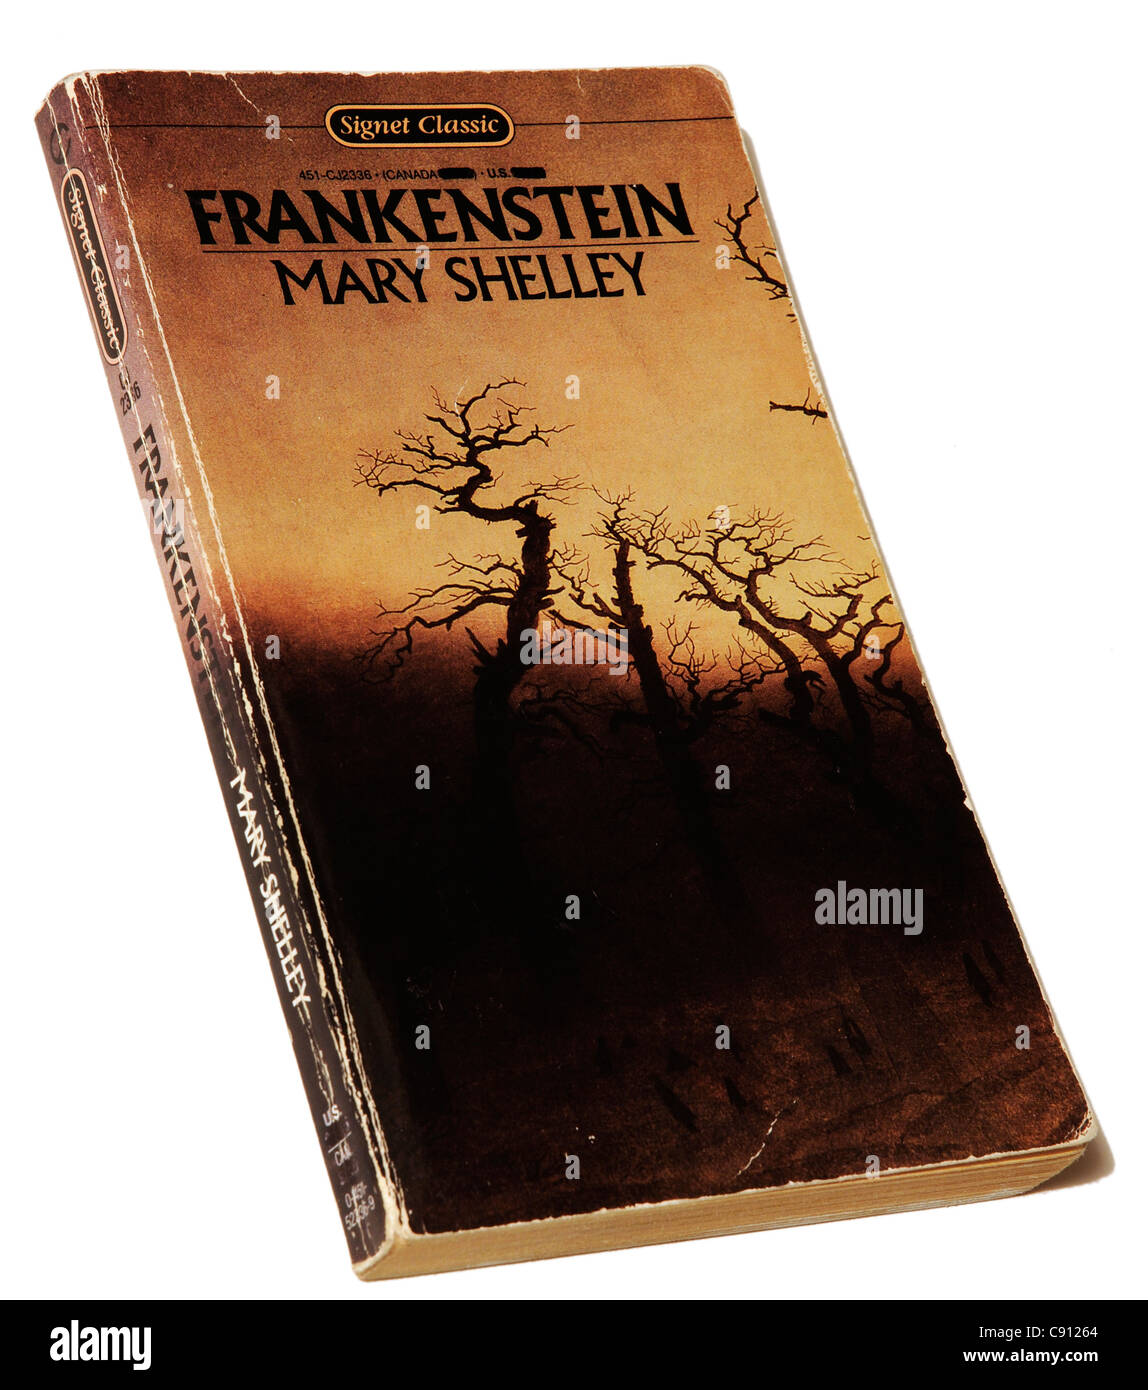 Frankenstein by Mary Shelley Stock Photo